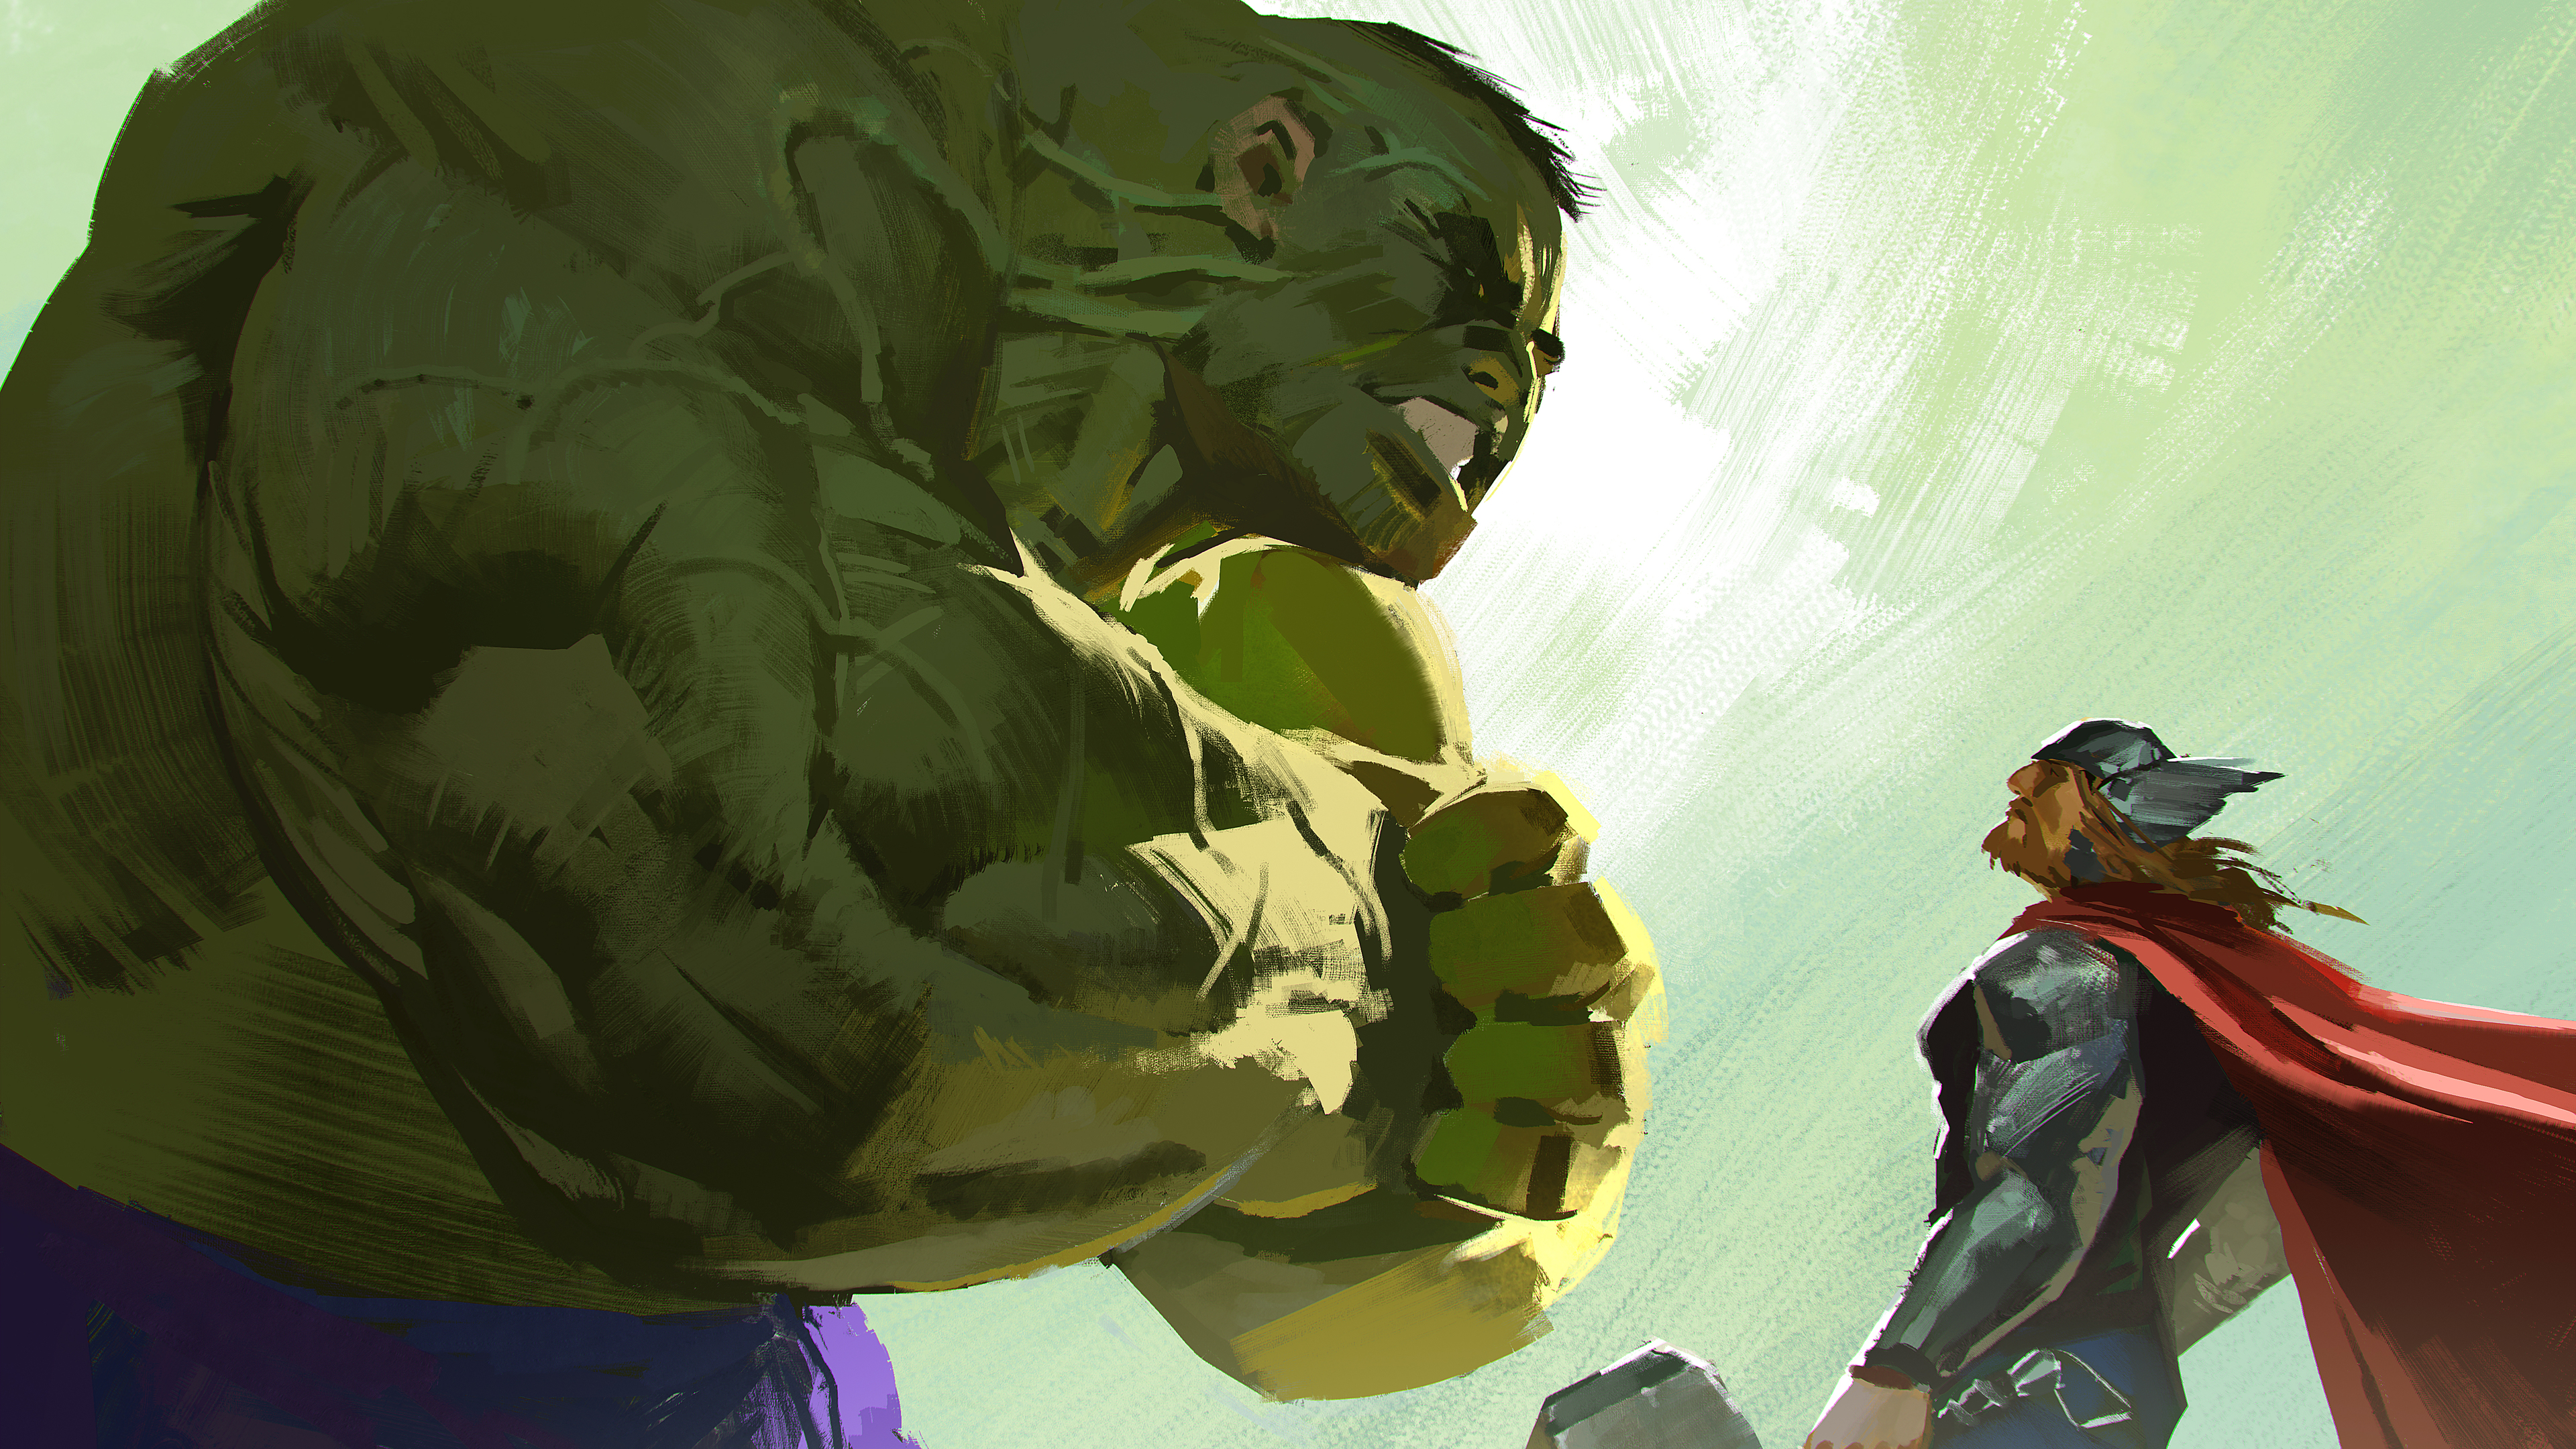 hulk and thor artwork 1536521555 - Hulk And Thor Artwork - thor wallpapers, superheroes wallpapers, hulk wallpapers, hd-wallpapers, deviantart wallpapers, artwork wallpapers, artist wallpapers, 5k wallpapers, 4k-wallpapers